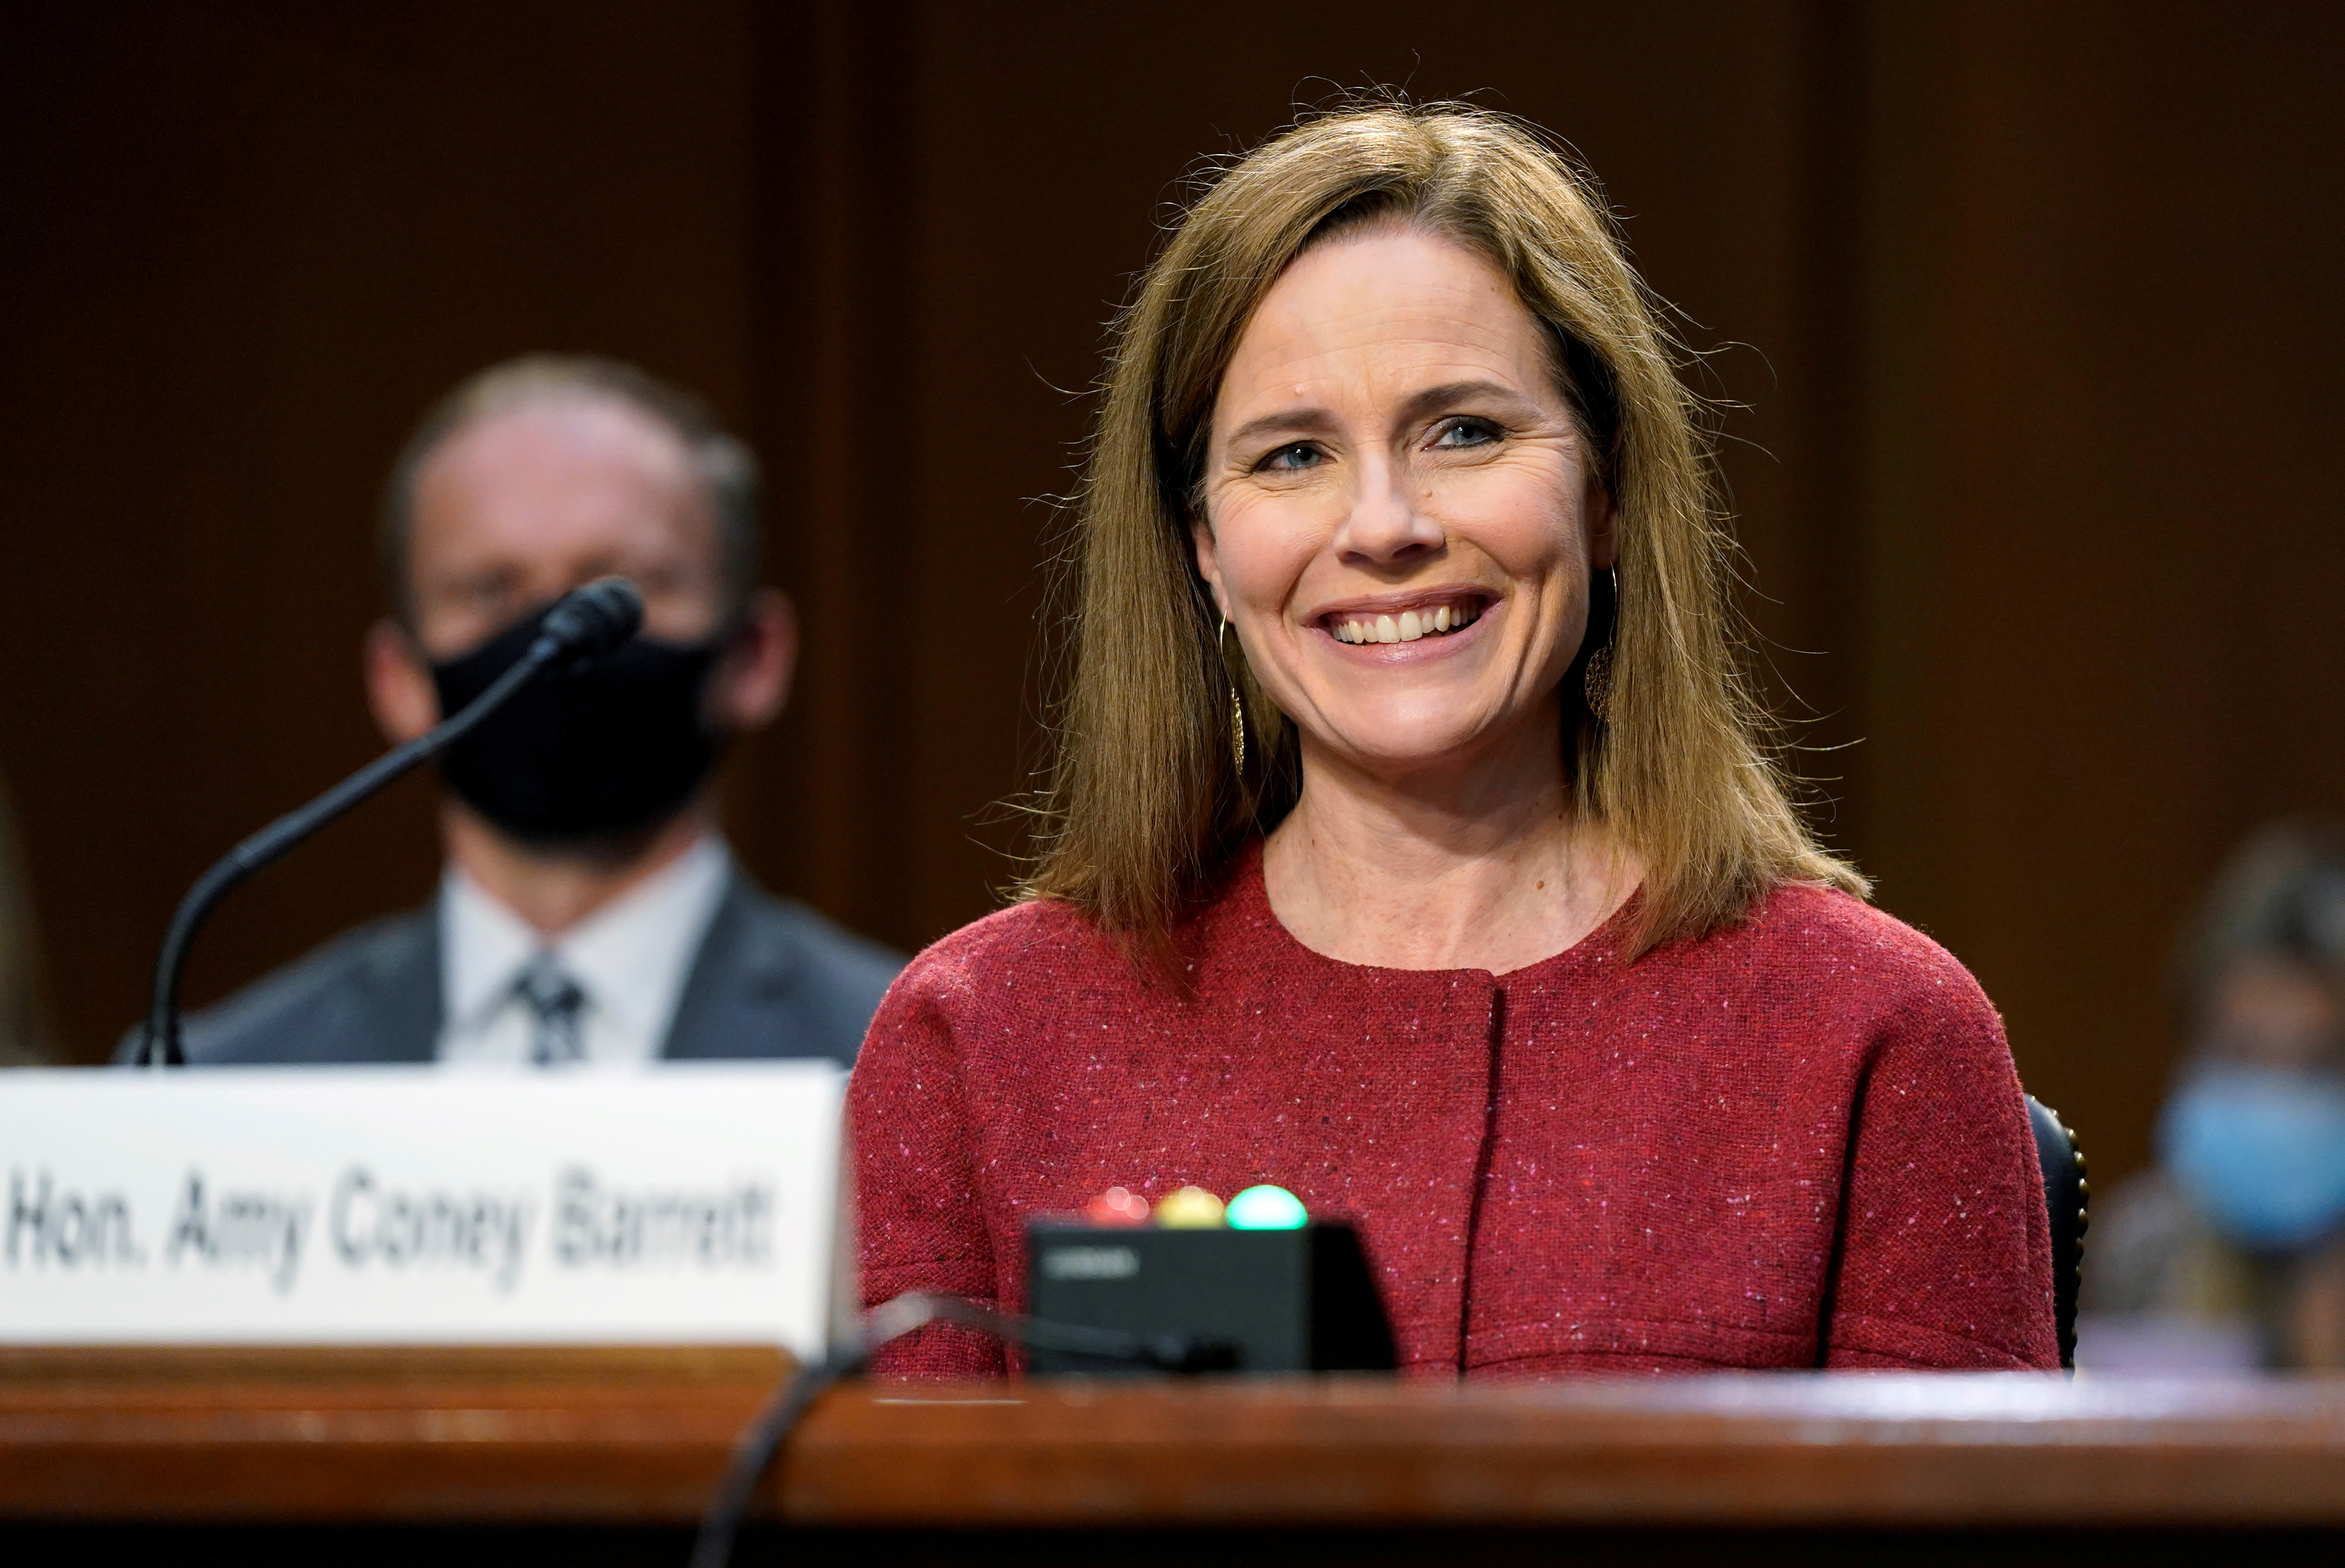 U.S. Supreme Court nominee Judge Amy Coney Barrett attends the second day of her confirmation hearing before the Senate Judiciary Committee on Capitol Hill in Washington, D.C., U.S., October 13, 2020. Patrick Semansky/Pool via REUTERS